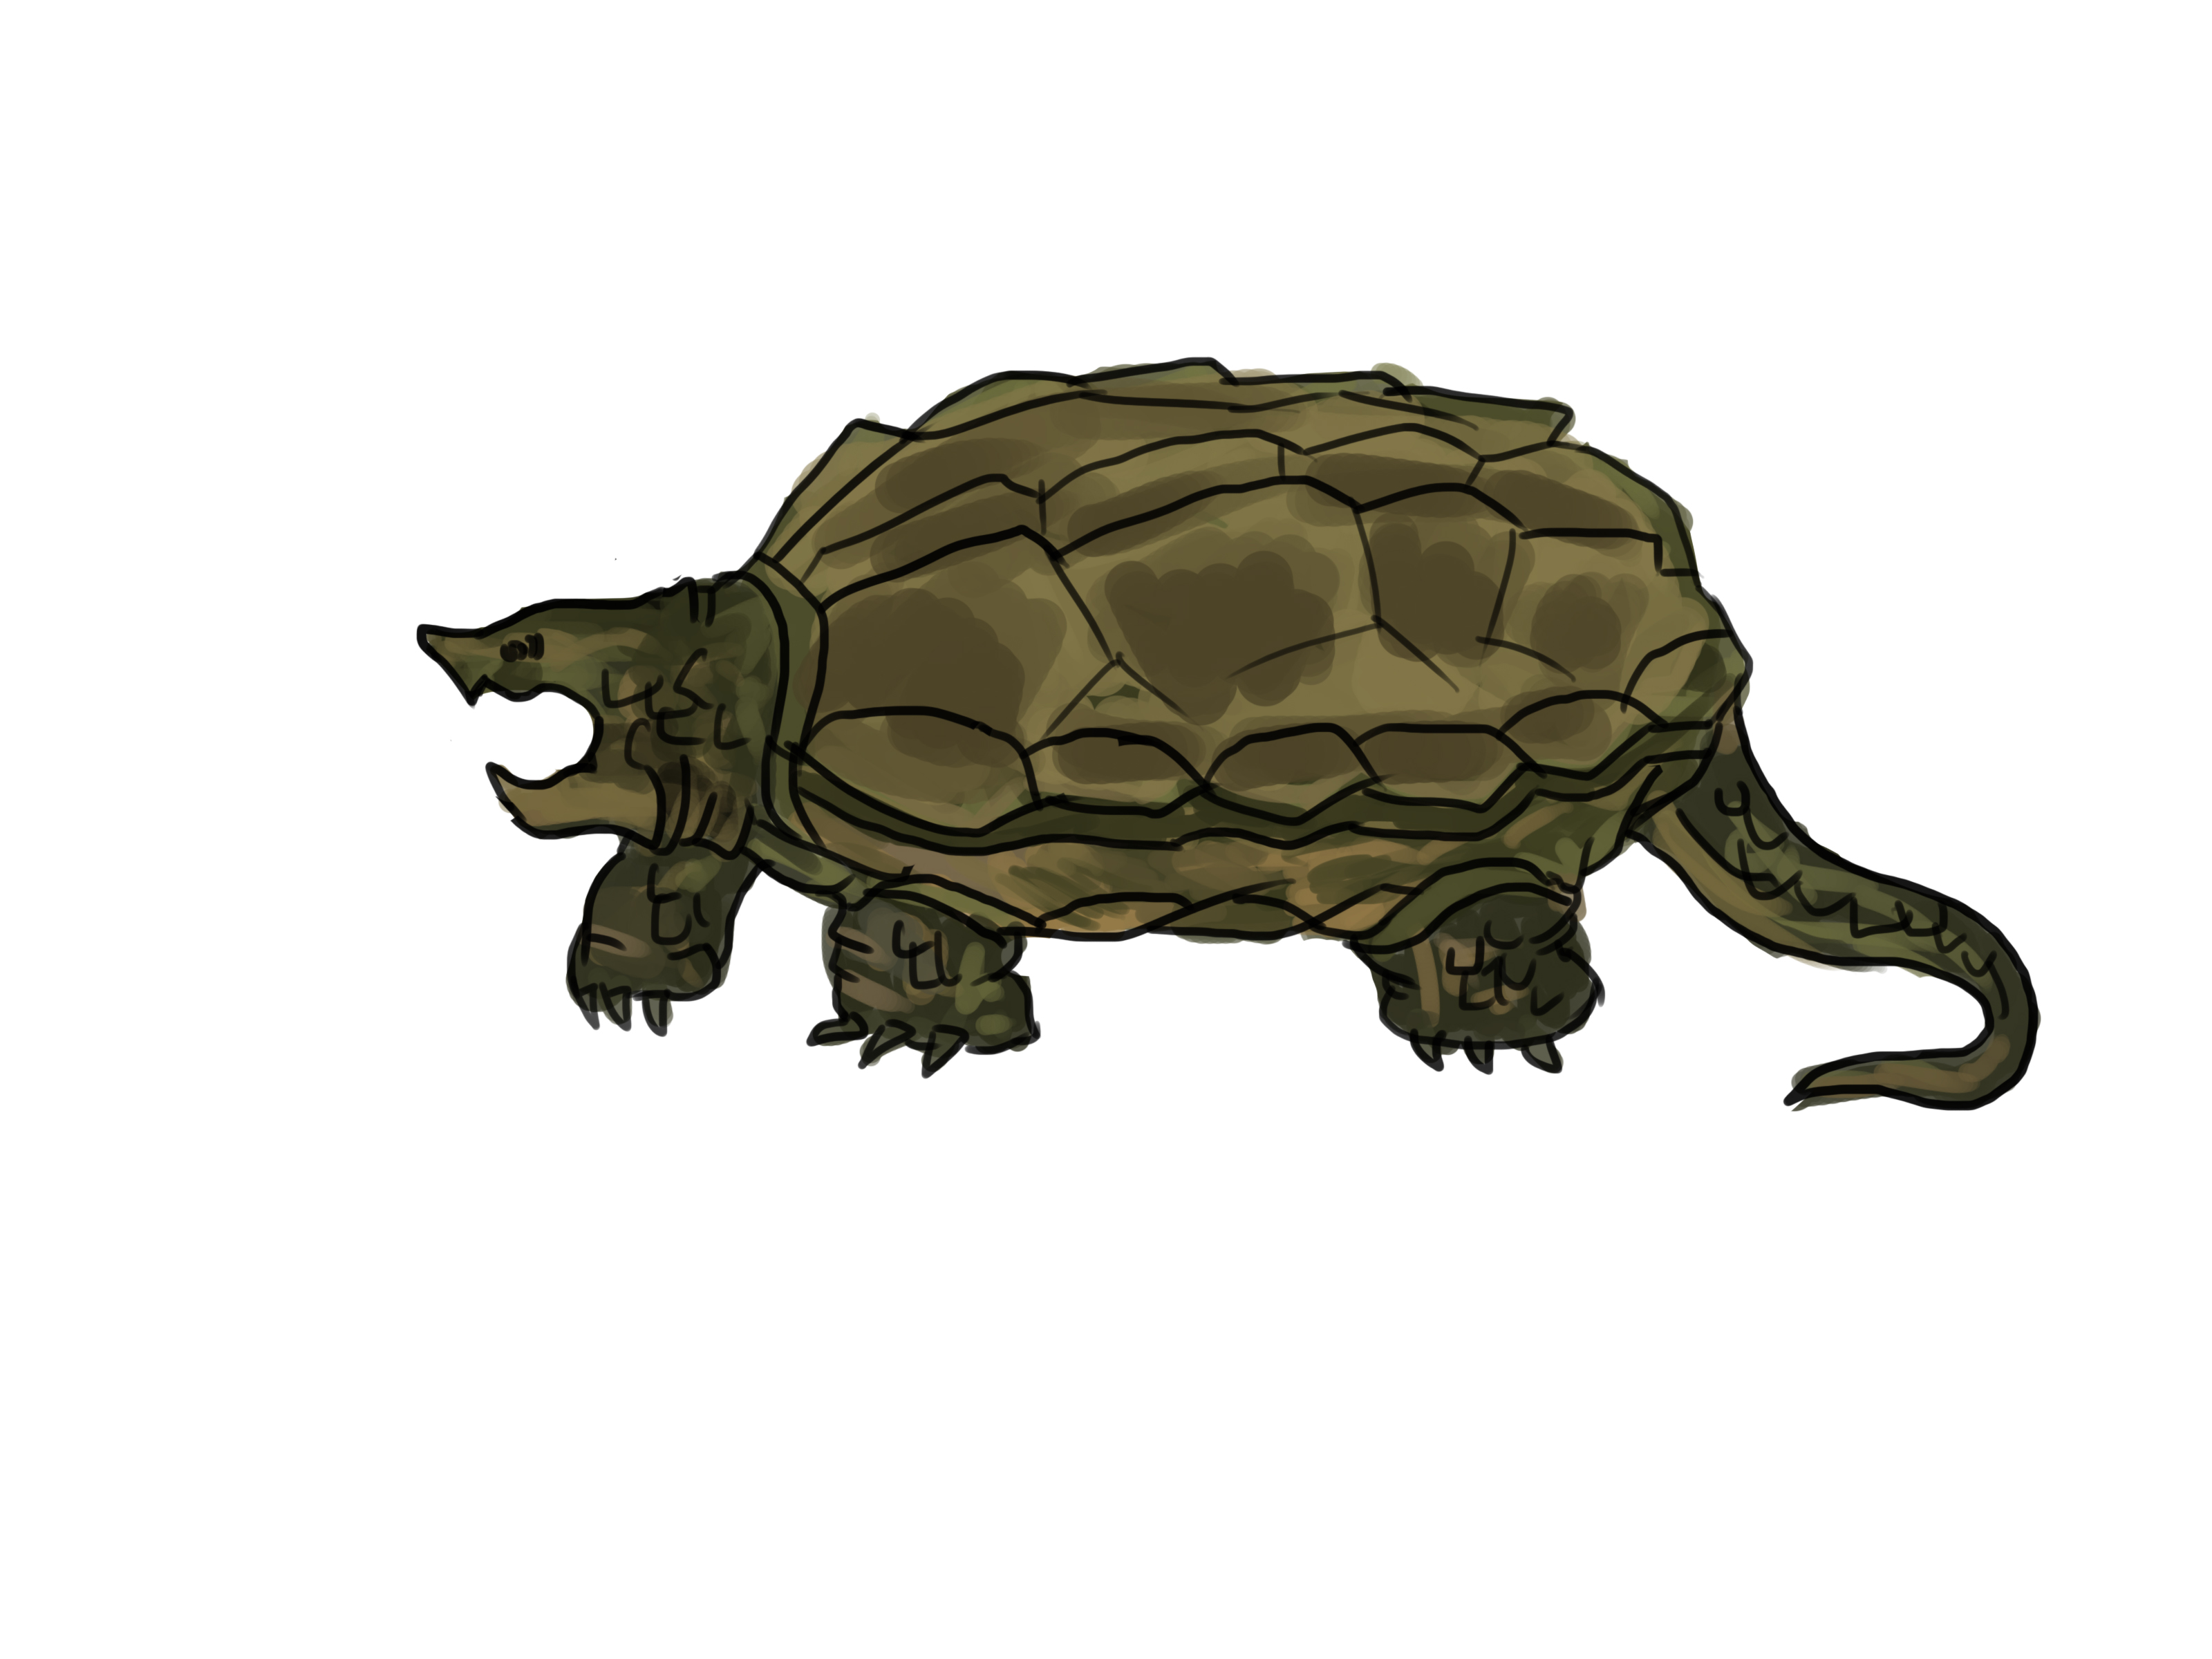 Drawn sea turtle snapping turtle Turtle Ways a to